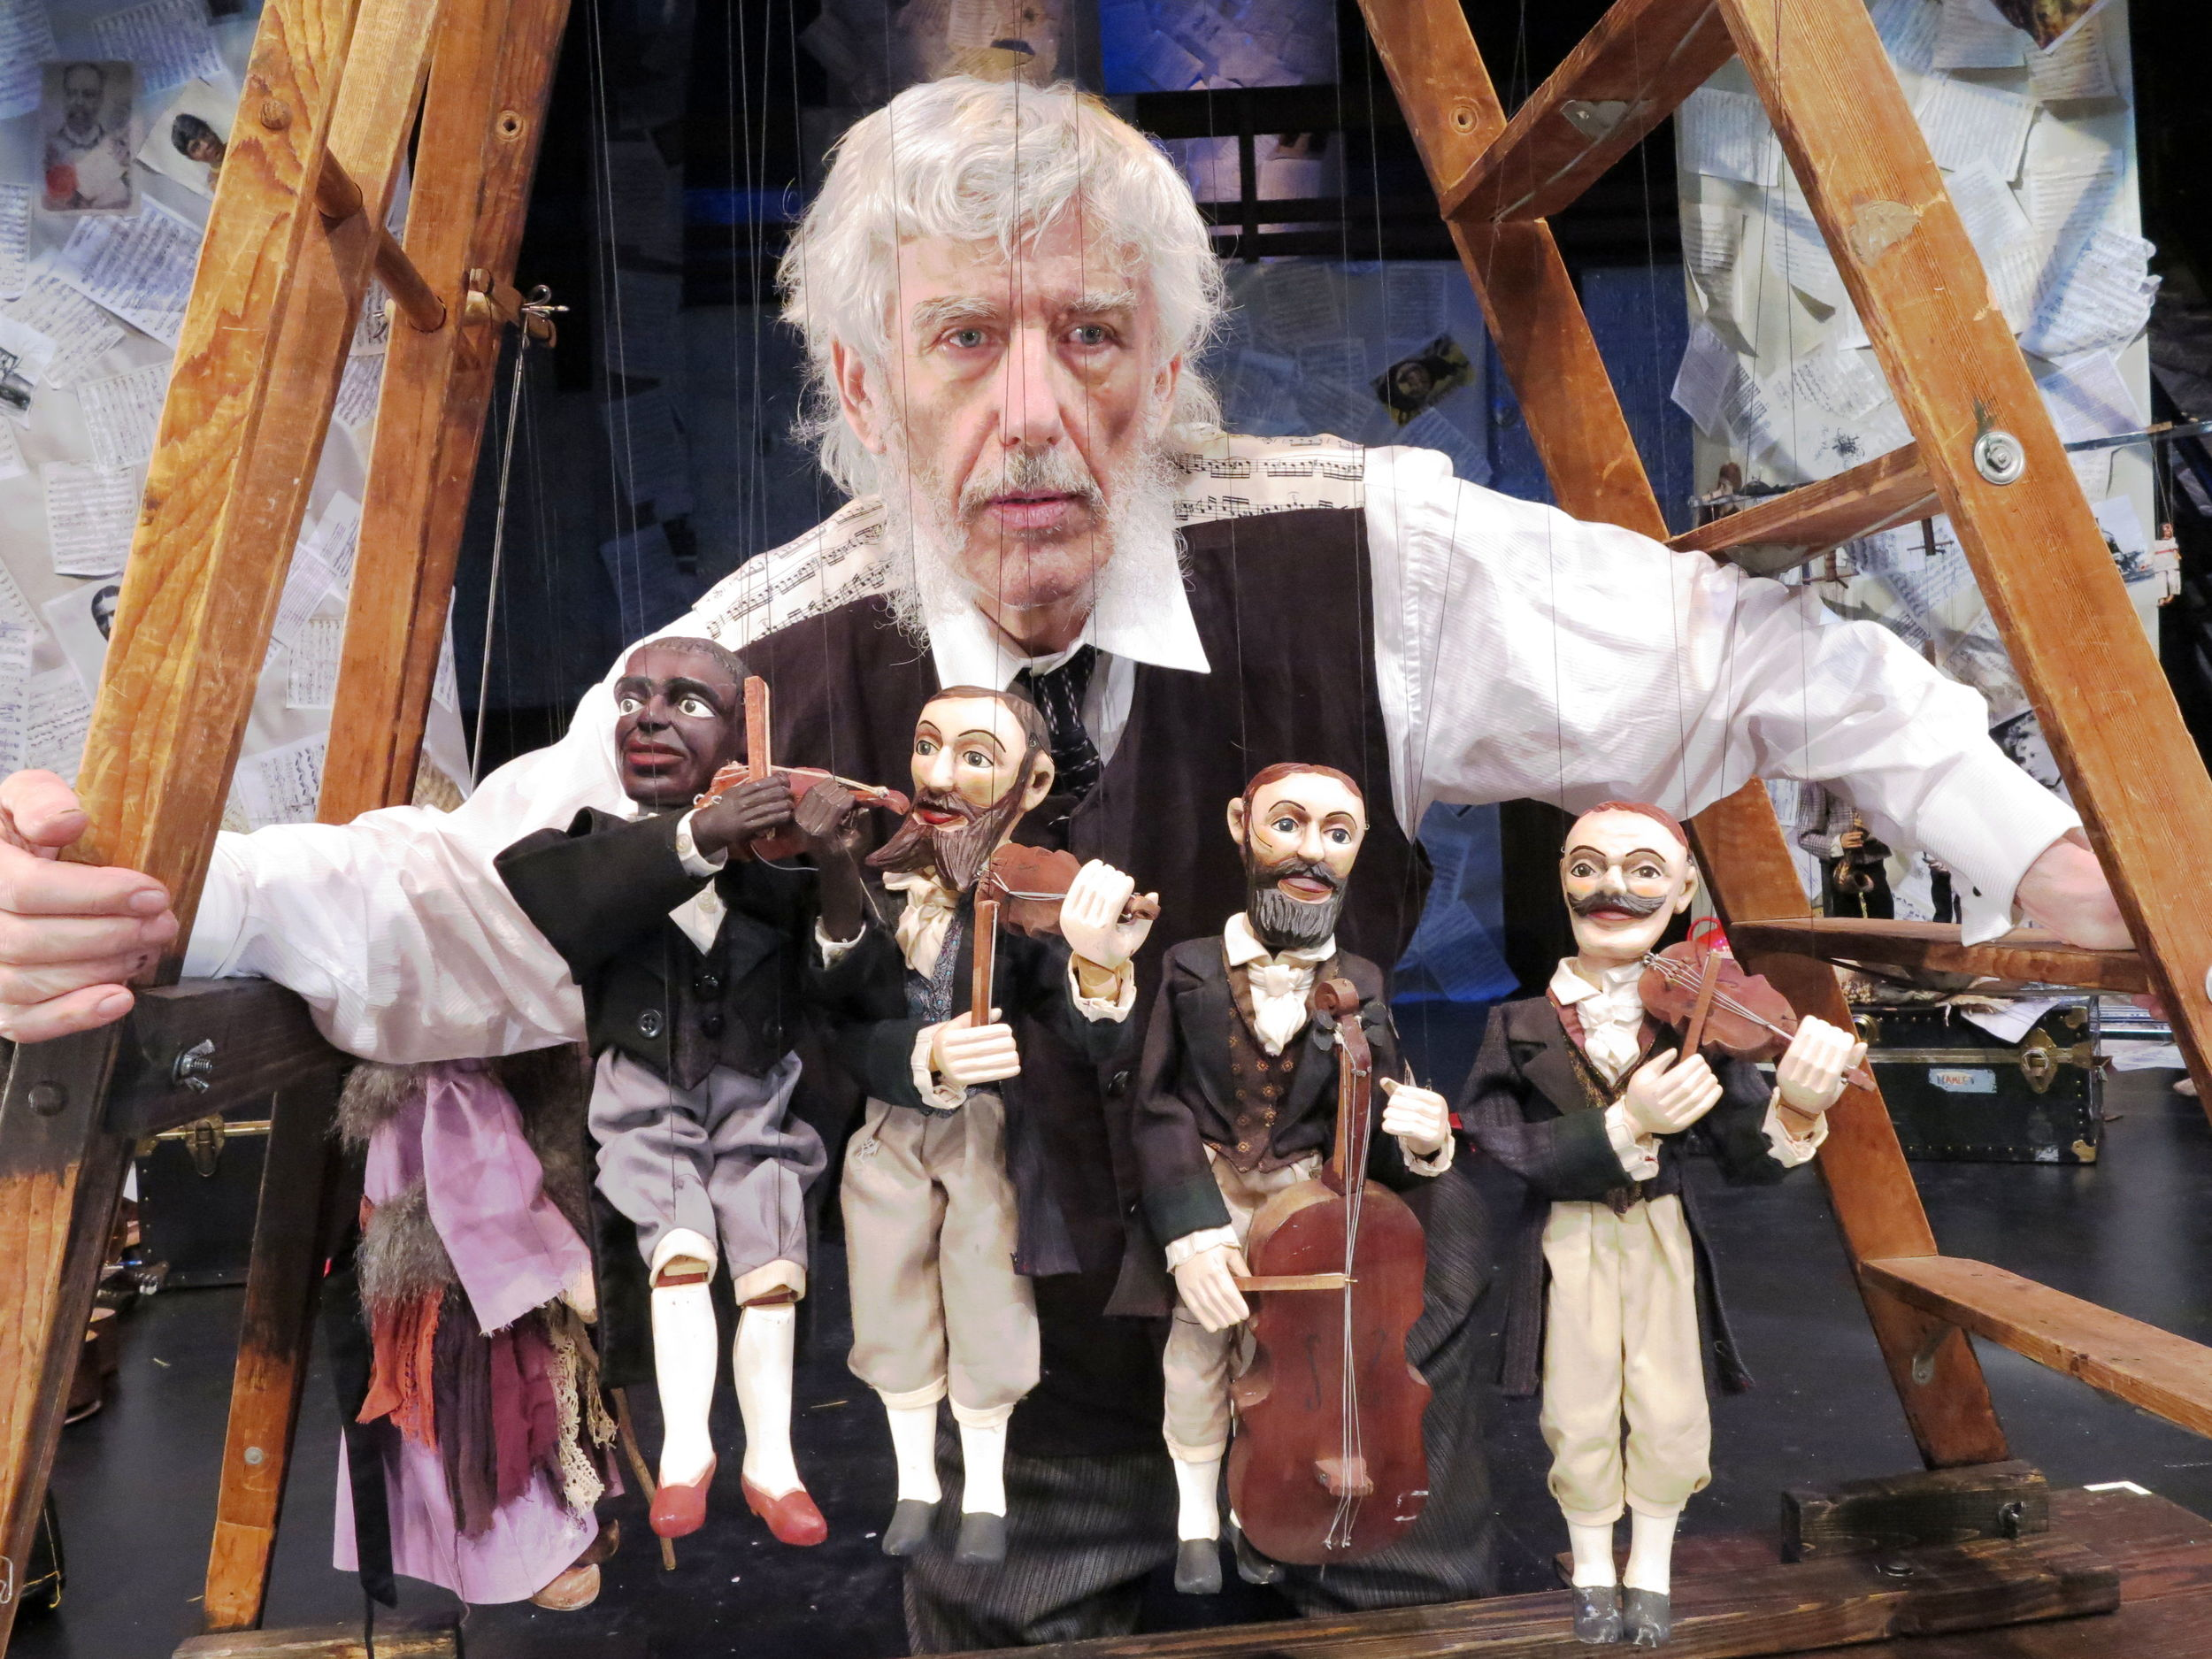 Vit Horejs with marionettes. Photo by Jonathan Slaff